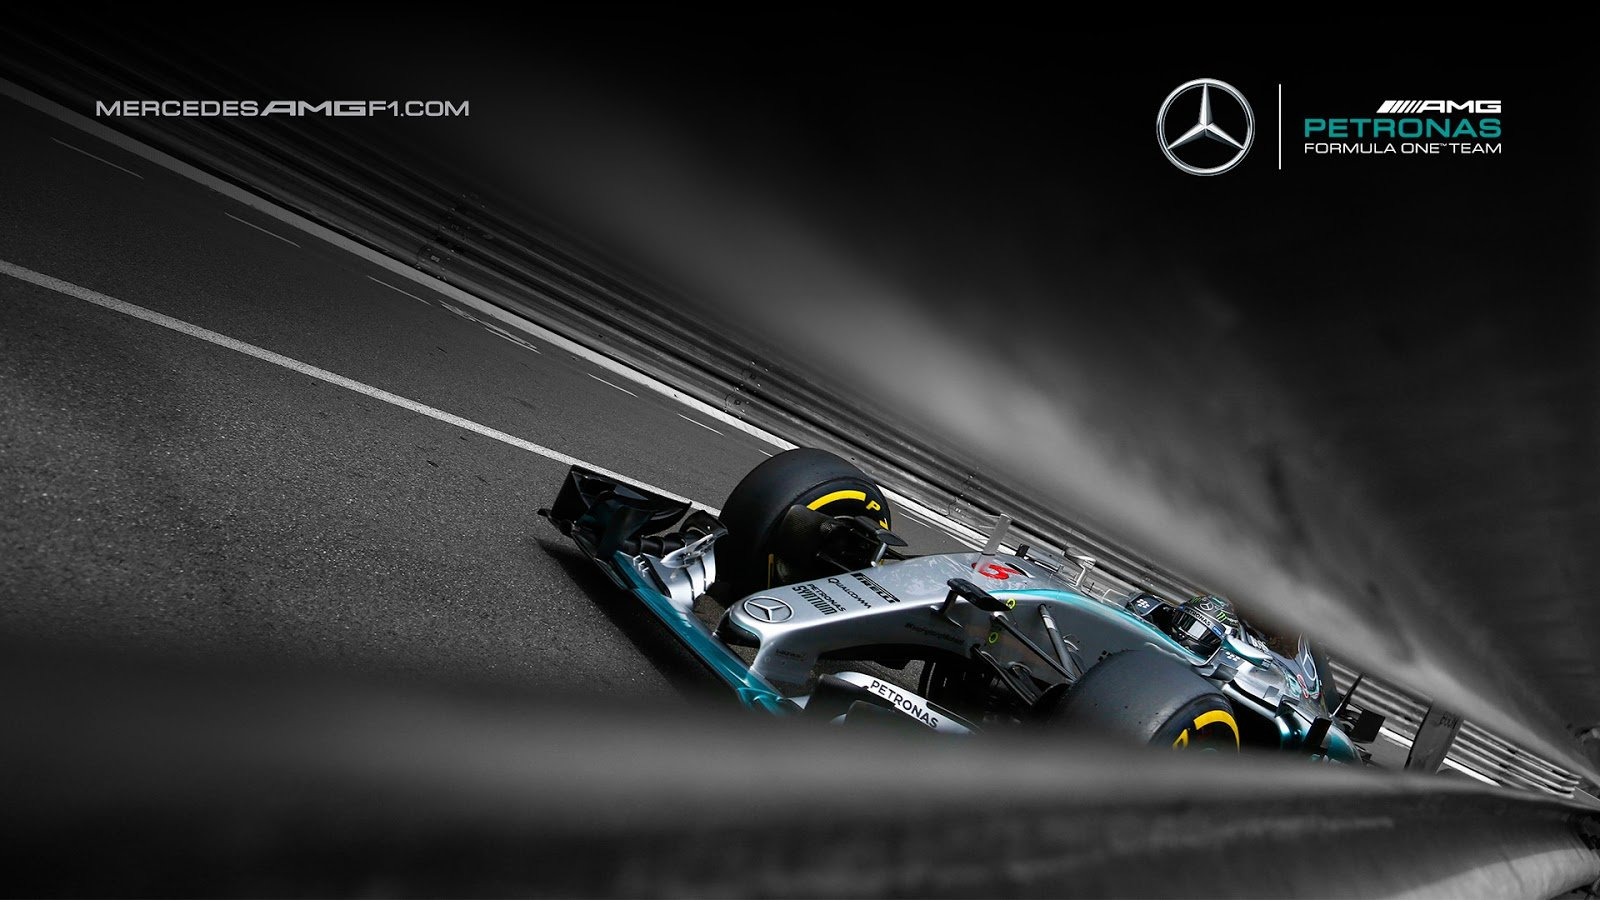 Free Download Mercedes Amg Petronas W06 2015 F1 Wallpaper Kfzoom Images, Photos, Reviews